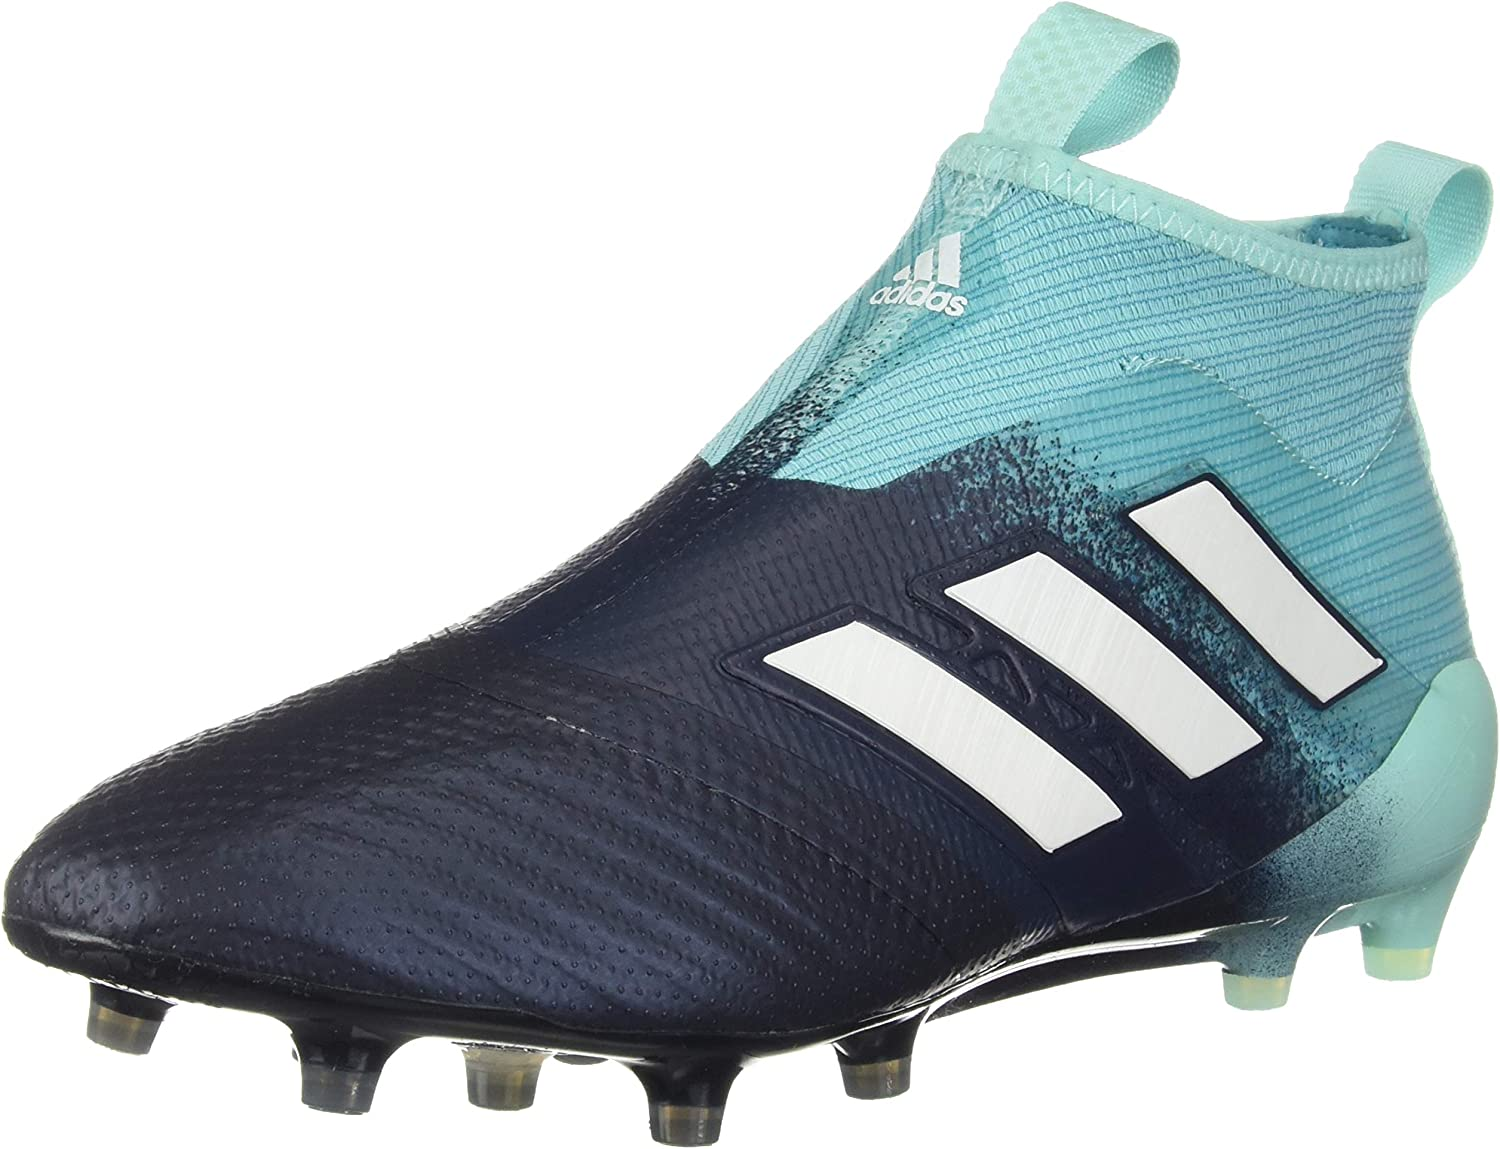 adidas Men's ACE 17 PURECONTROL Soccer Cleat